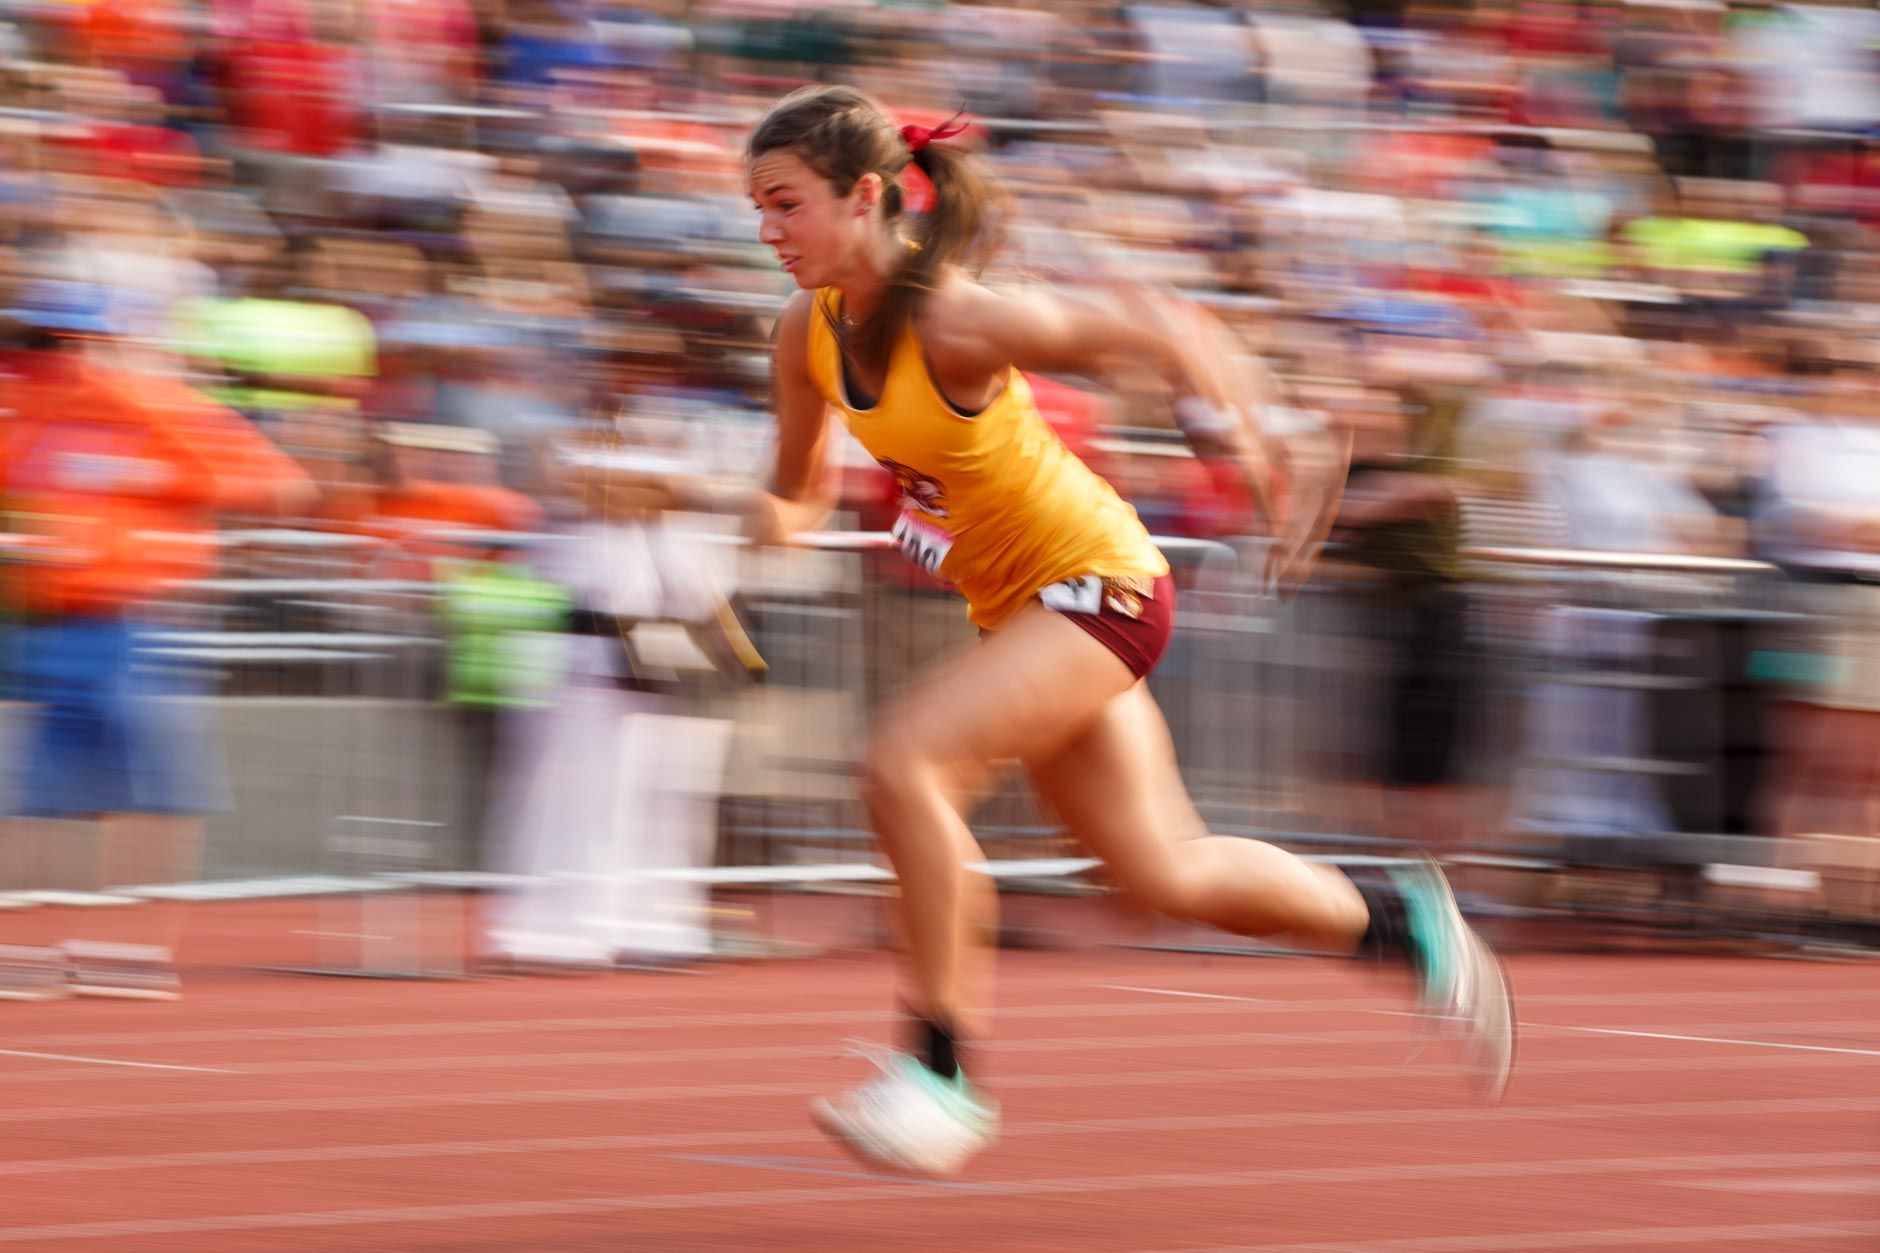 Bloomington's Taylor Storm competes in the 4x100 meter relay during the IHSAA Girls Track and Field State Finals in Bloomington, Indiana on Saturday, June 1, 2019. (James Brosher for The Herald-Times)